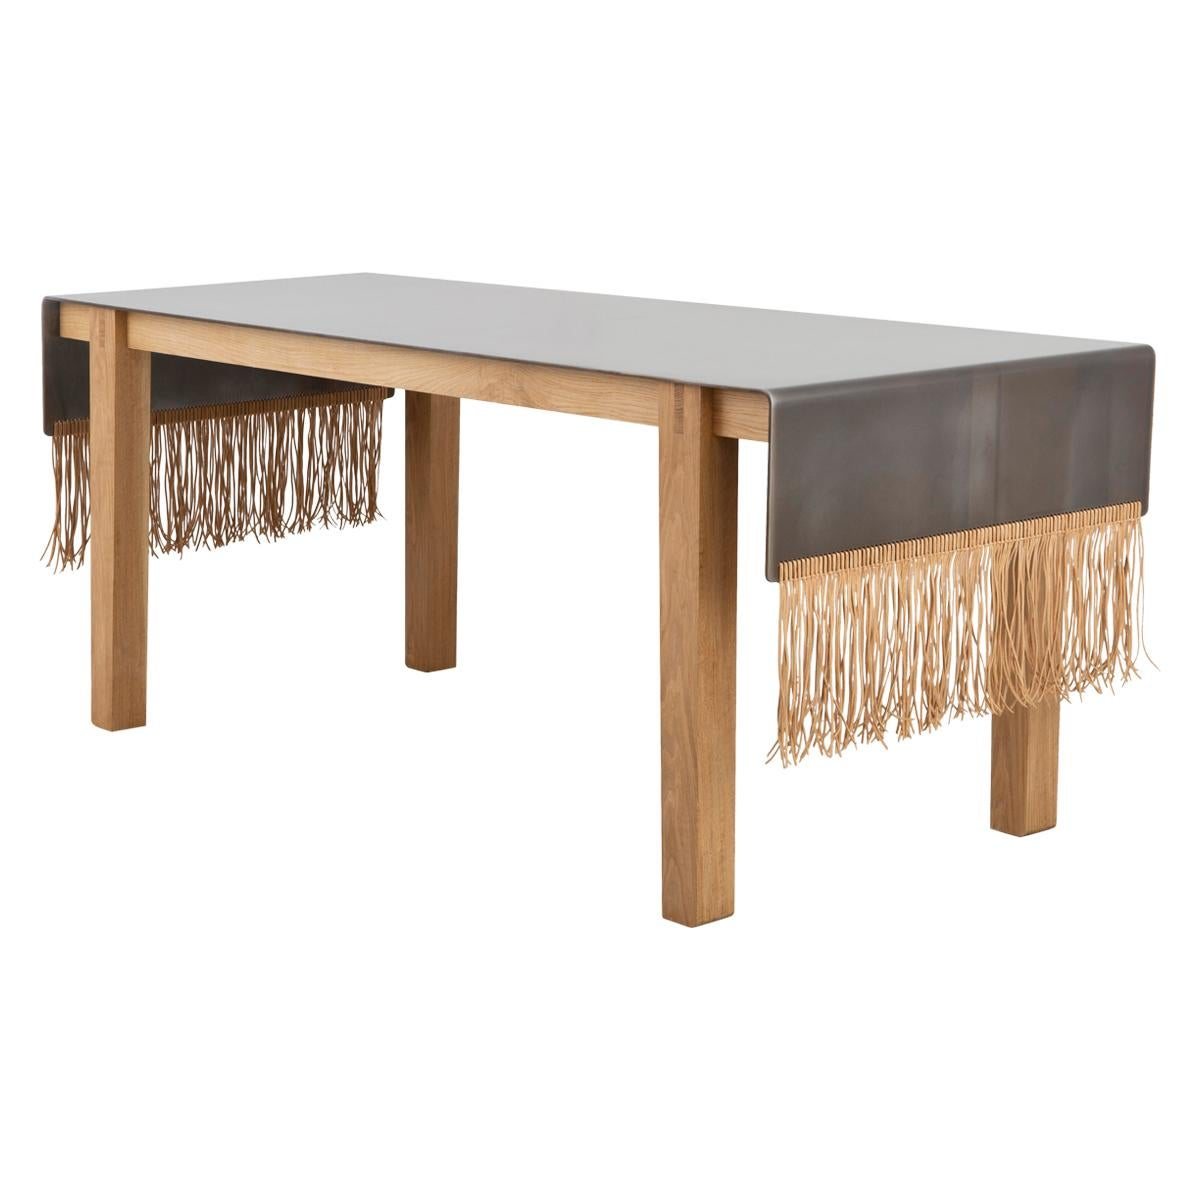 Contemporary Steel, Oak and Suede Native Table by Vivian Carbonell